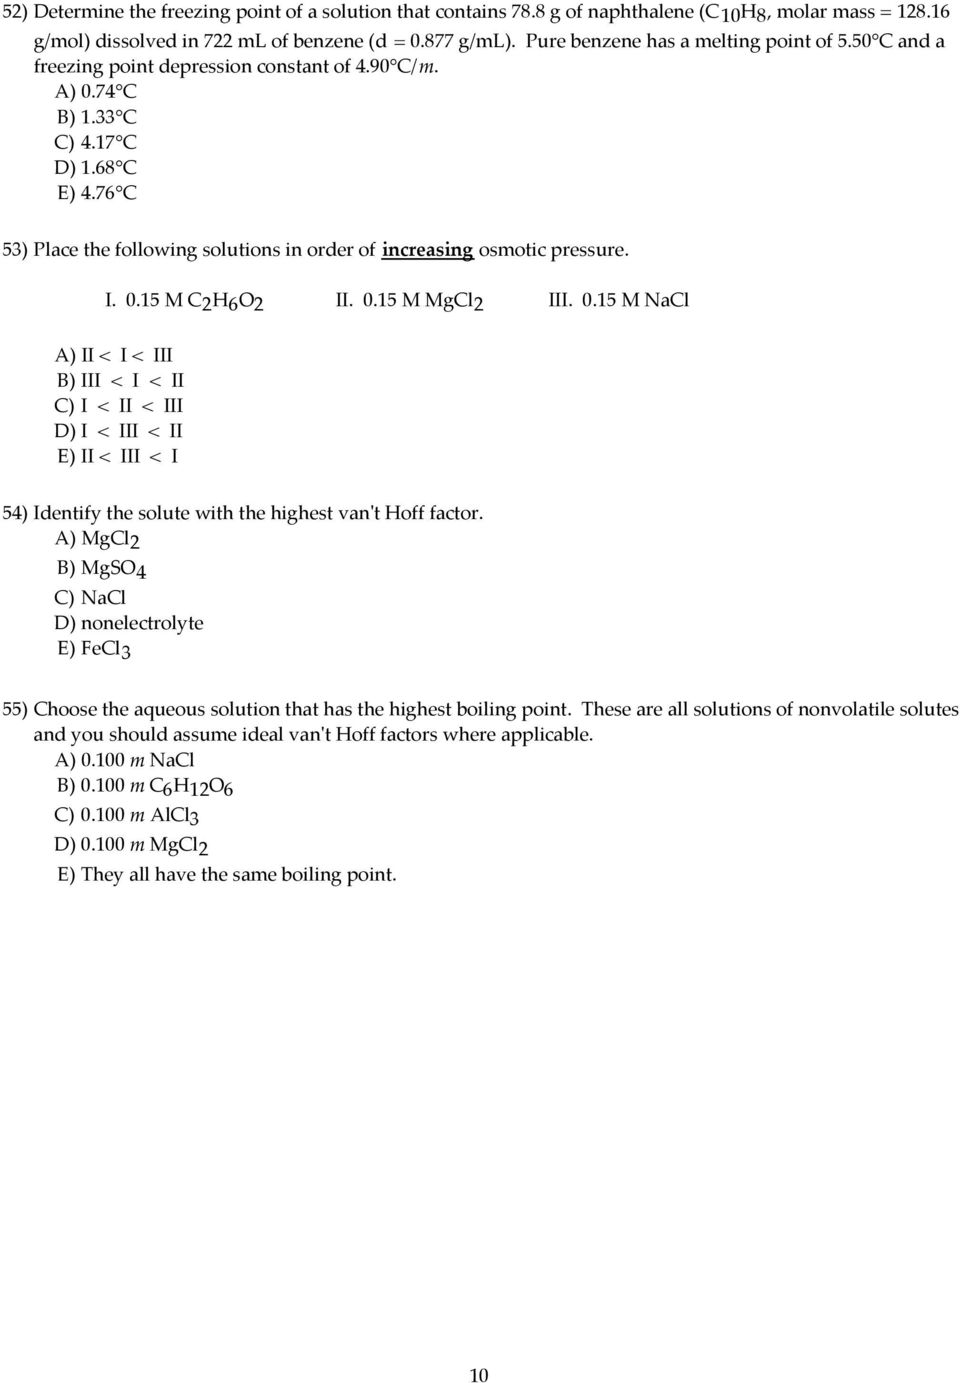 medium resolution of 76 c 53 place the following solutions in order of increasing osmotic pressure i